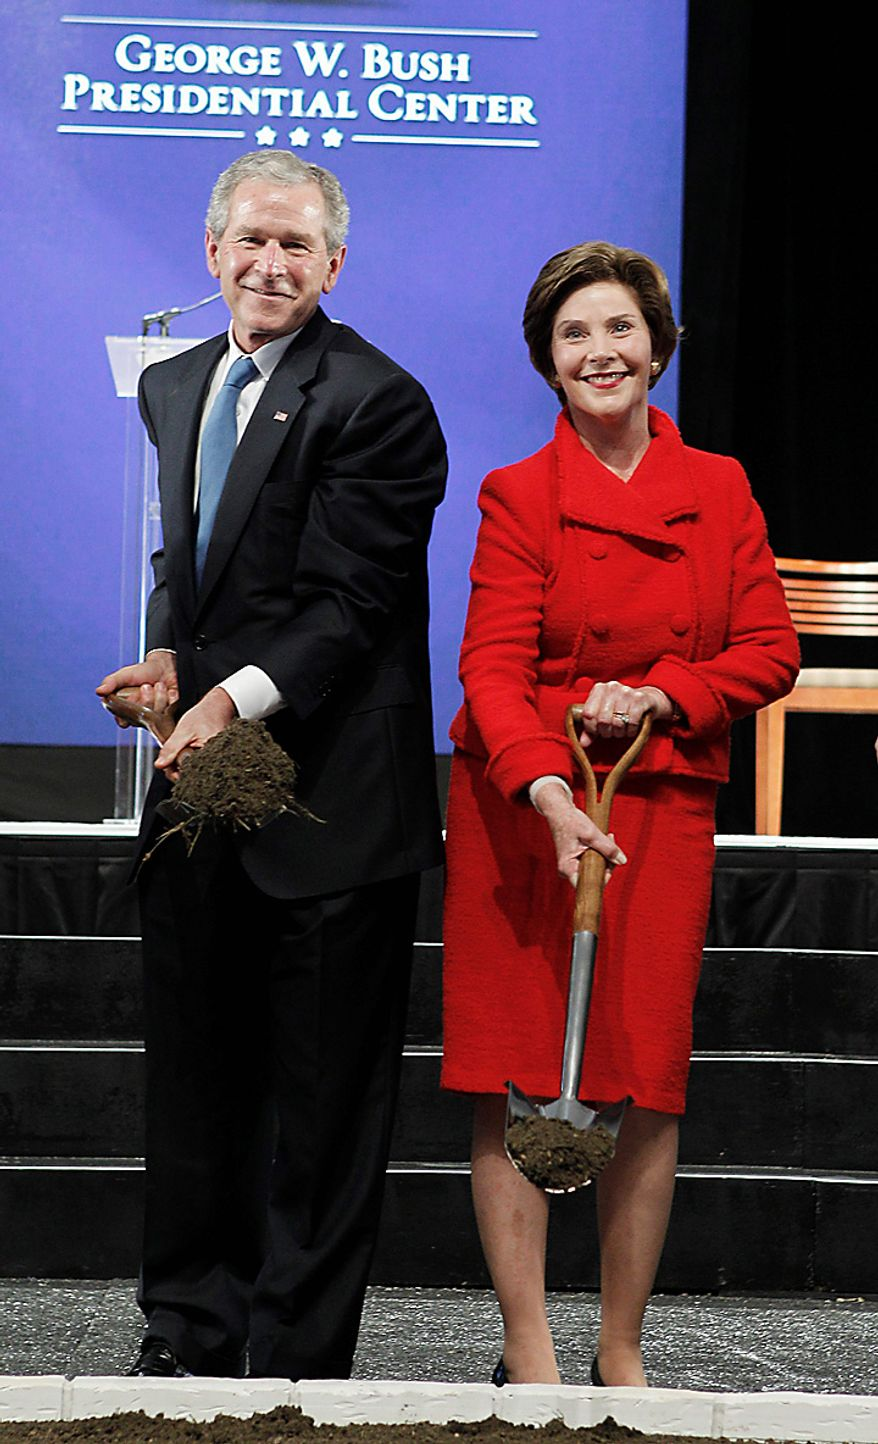 Former President George W. Bush, left,, and his wife Laura Bush pick up shovels of dirt during the ground breaking ceremony for the President George W. Bush Presidential Center at SMU in Dallas, Tuesday, Nov. 16, 2010. (AP Photo/LM Otero)